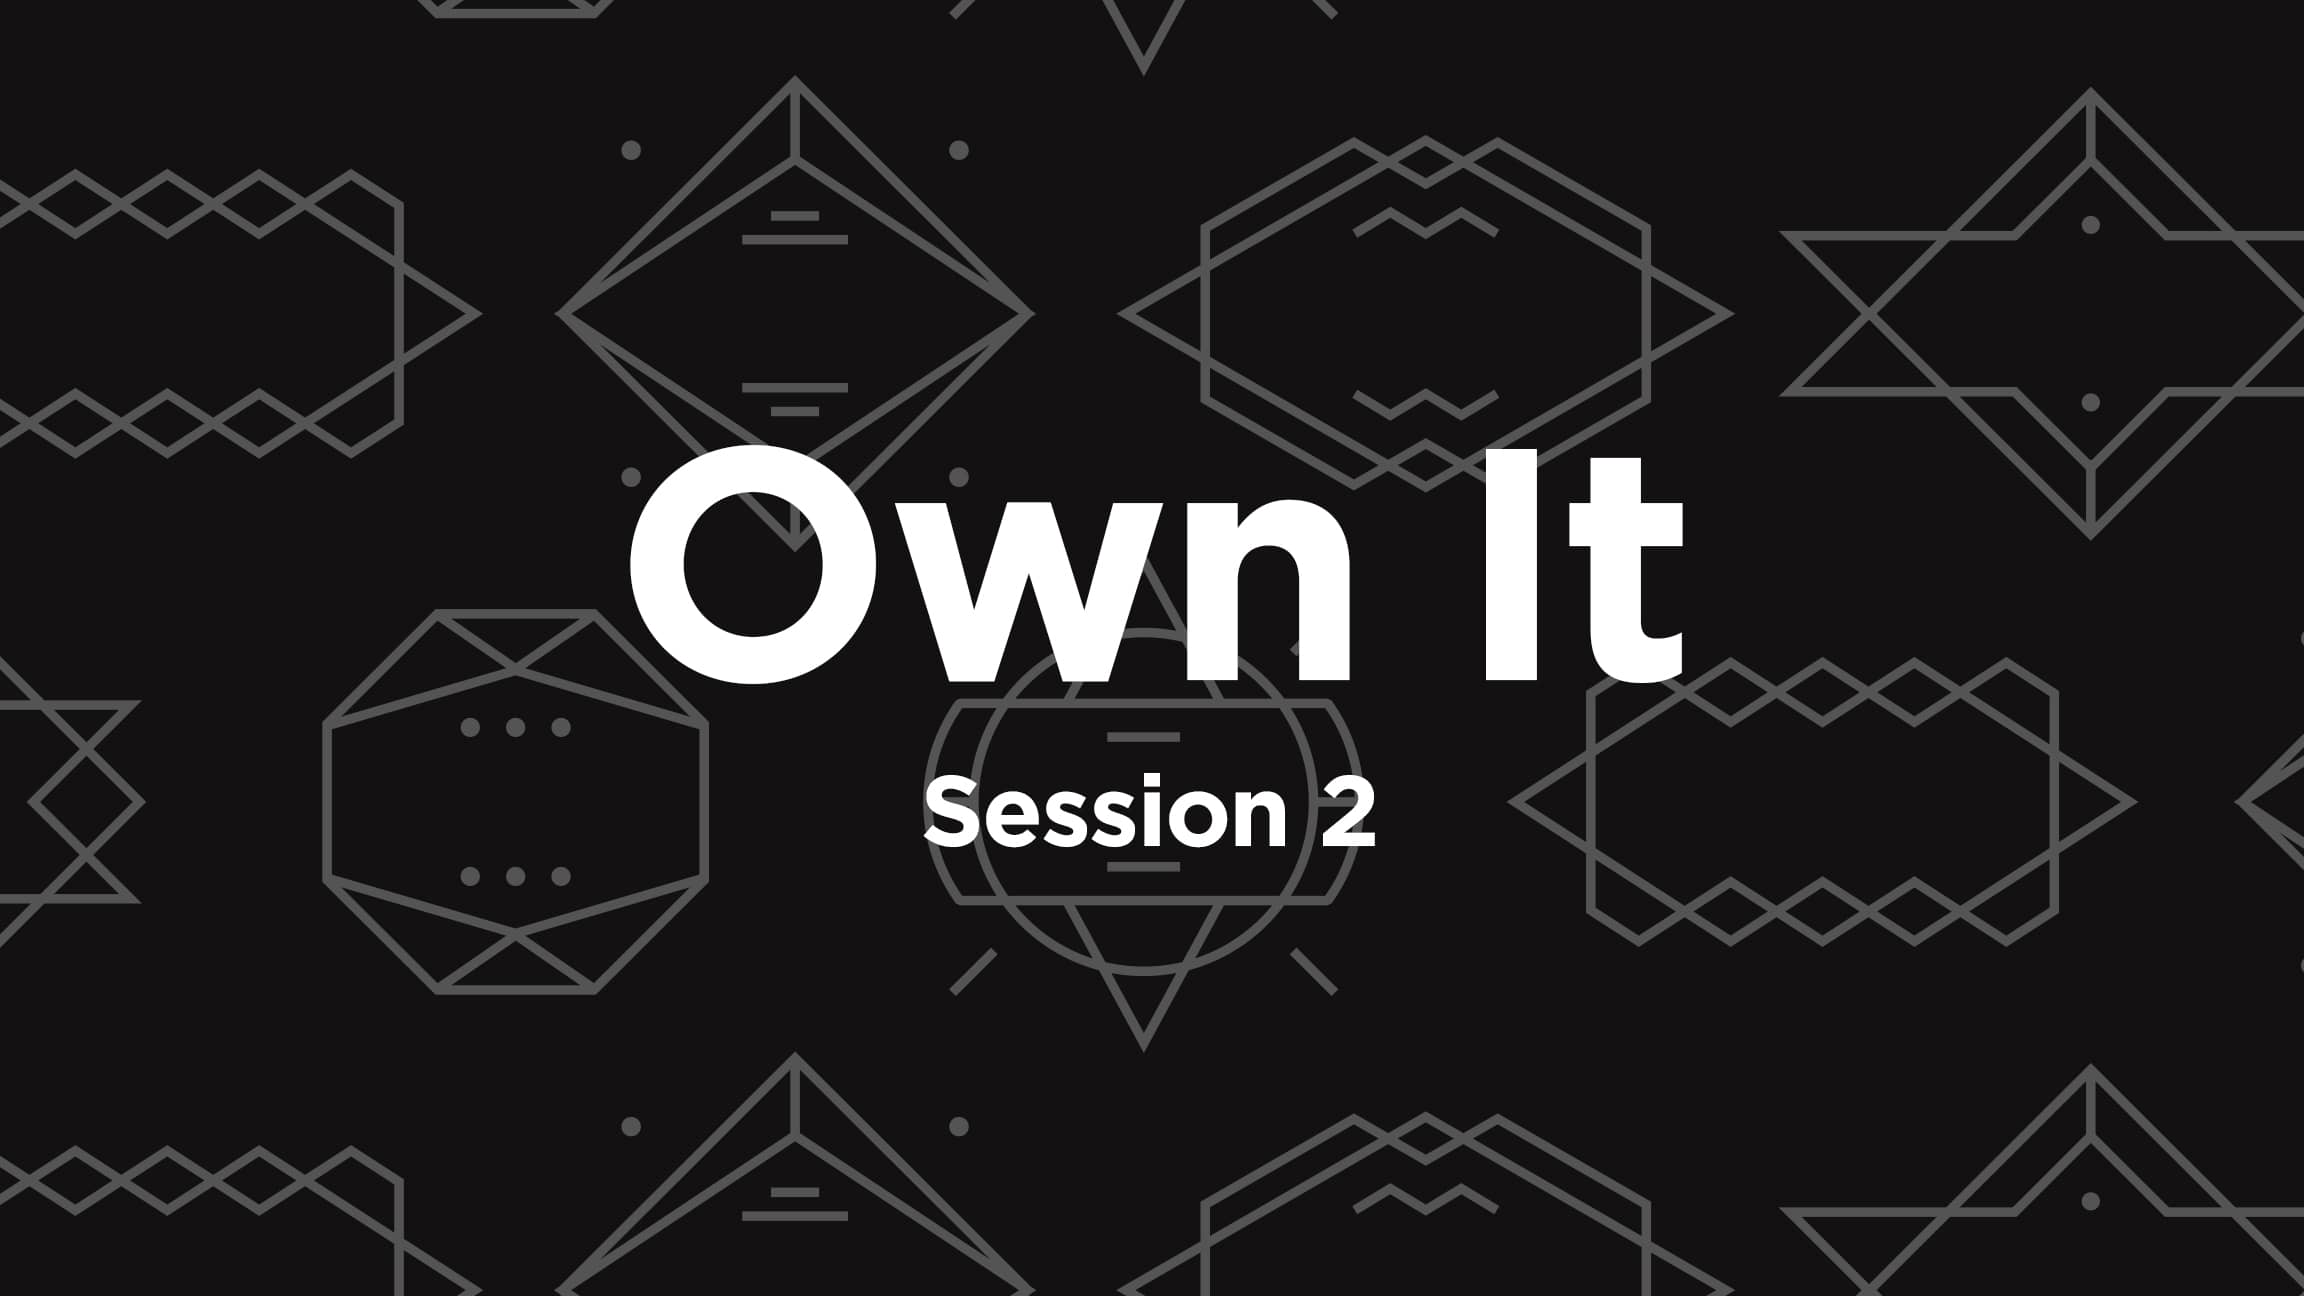 session-2-own-it-recent-curriculum-img